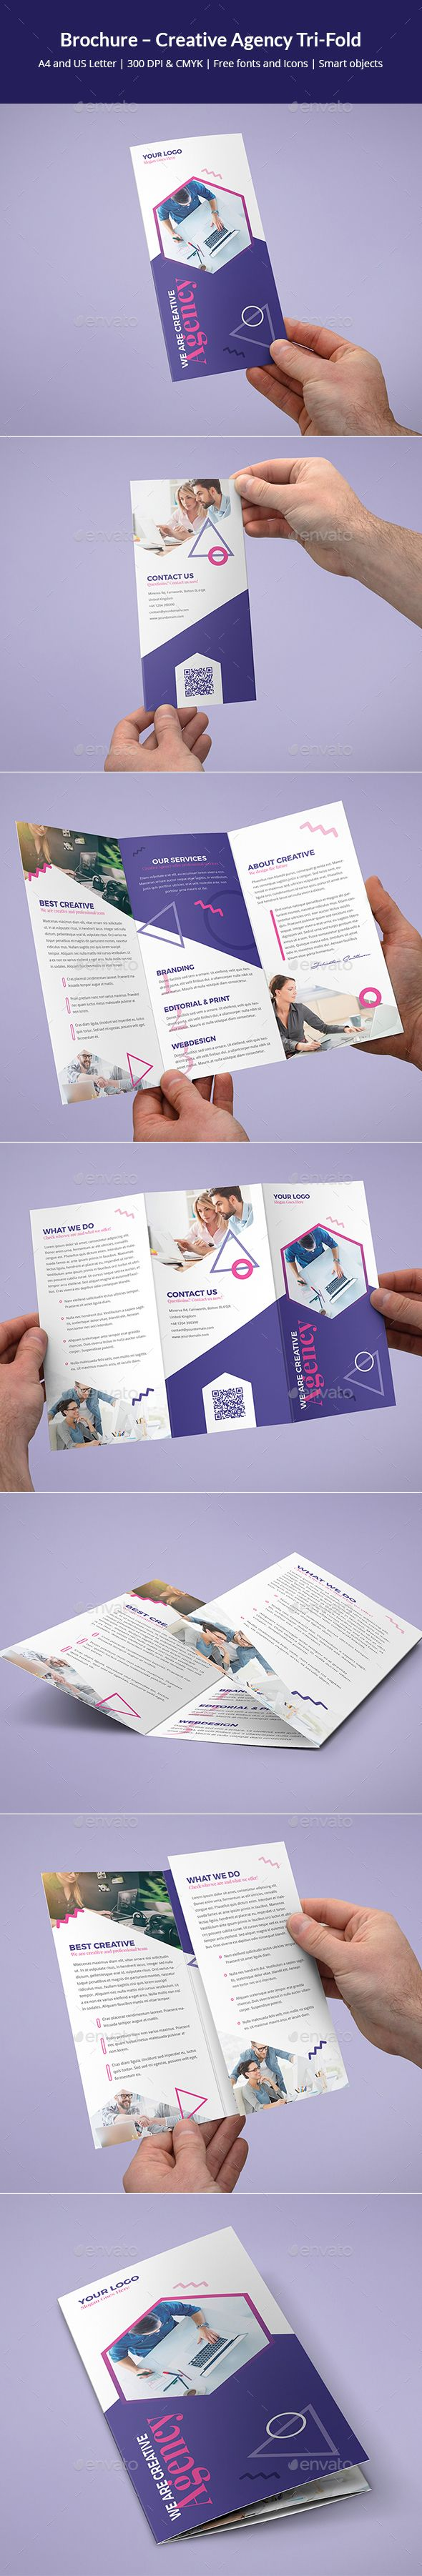 Creative Agency Tri-Fold Brochure Template PSD